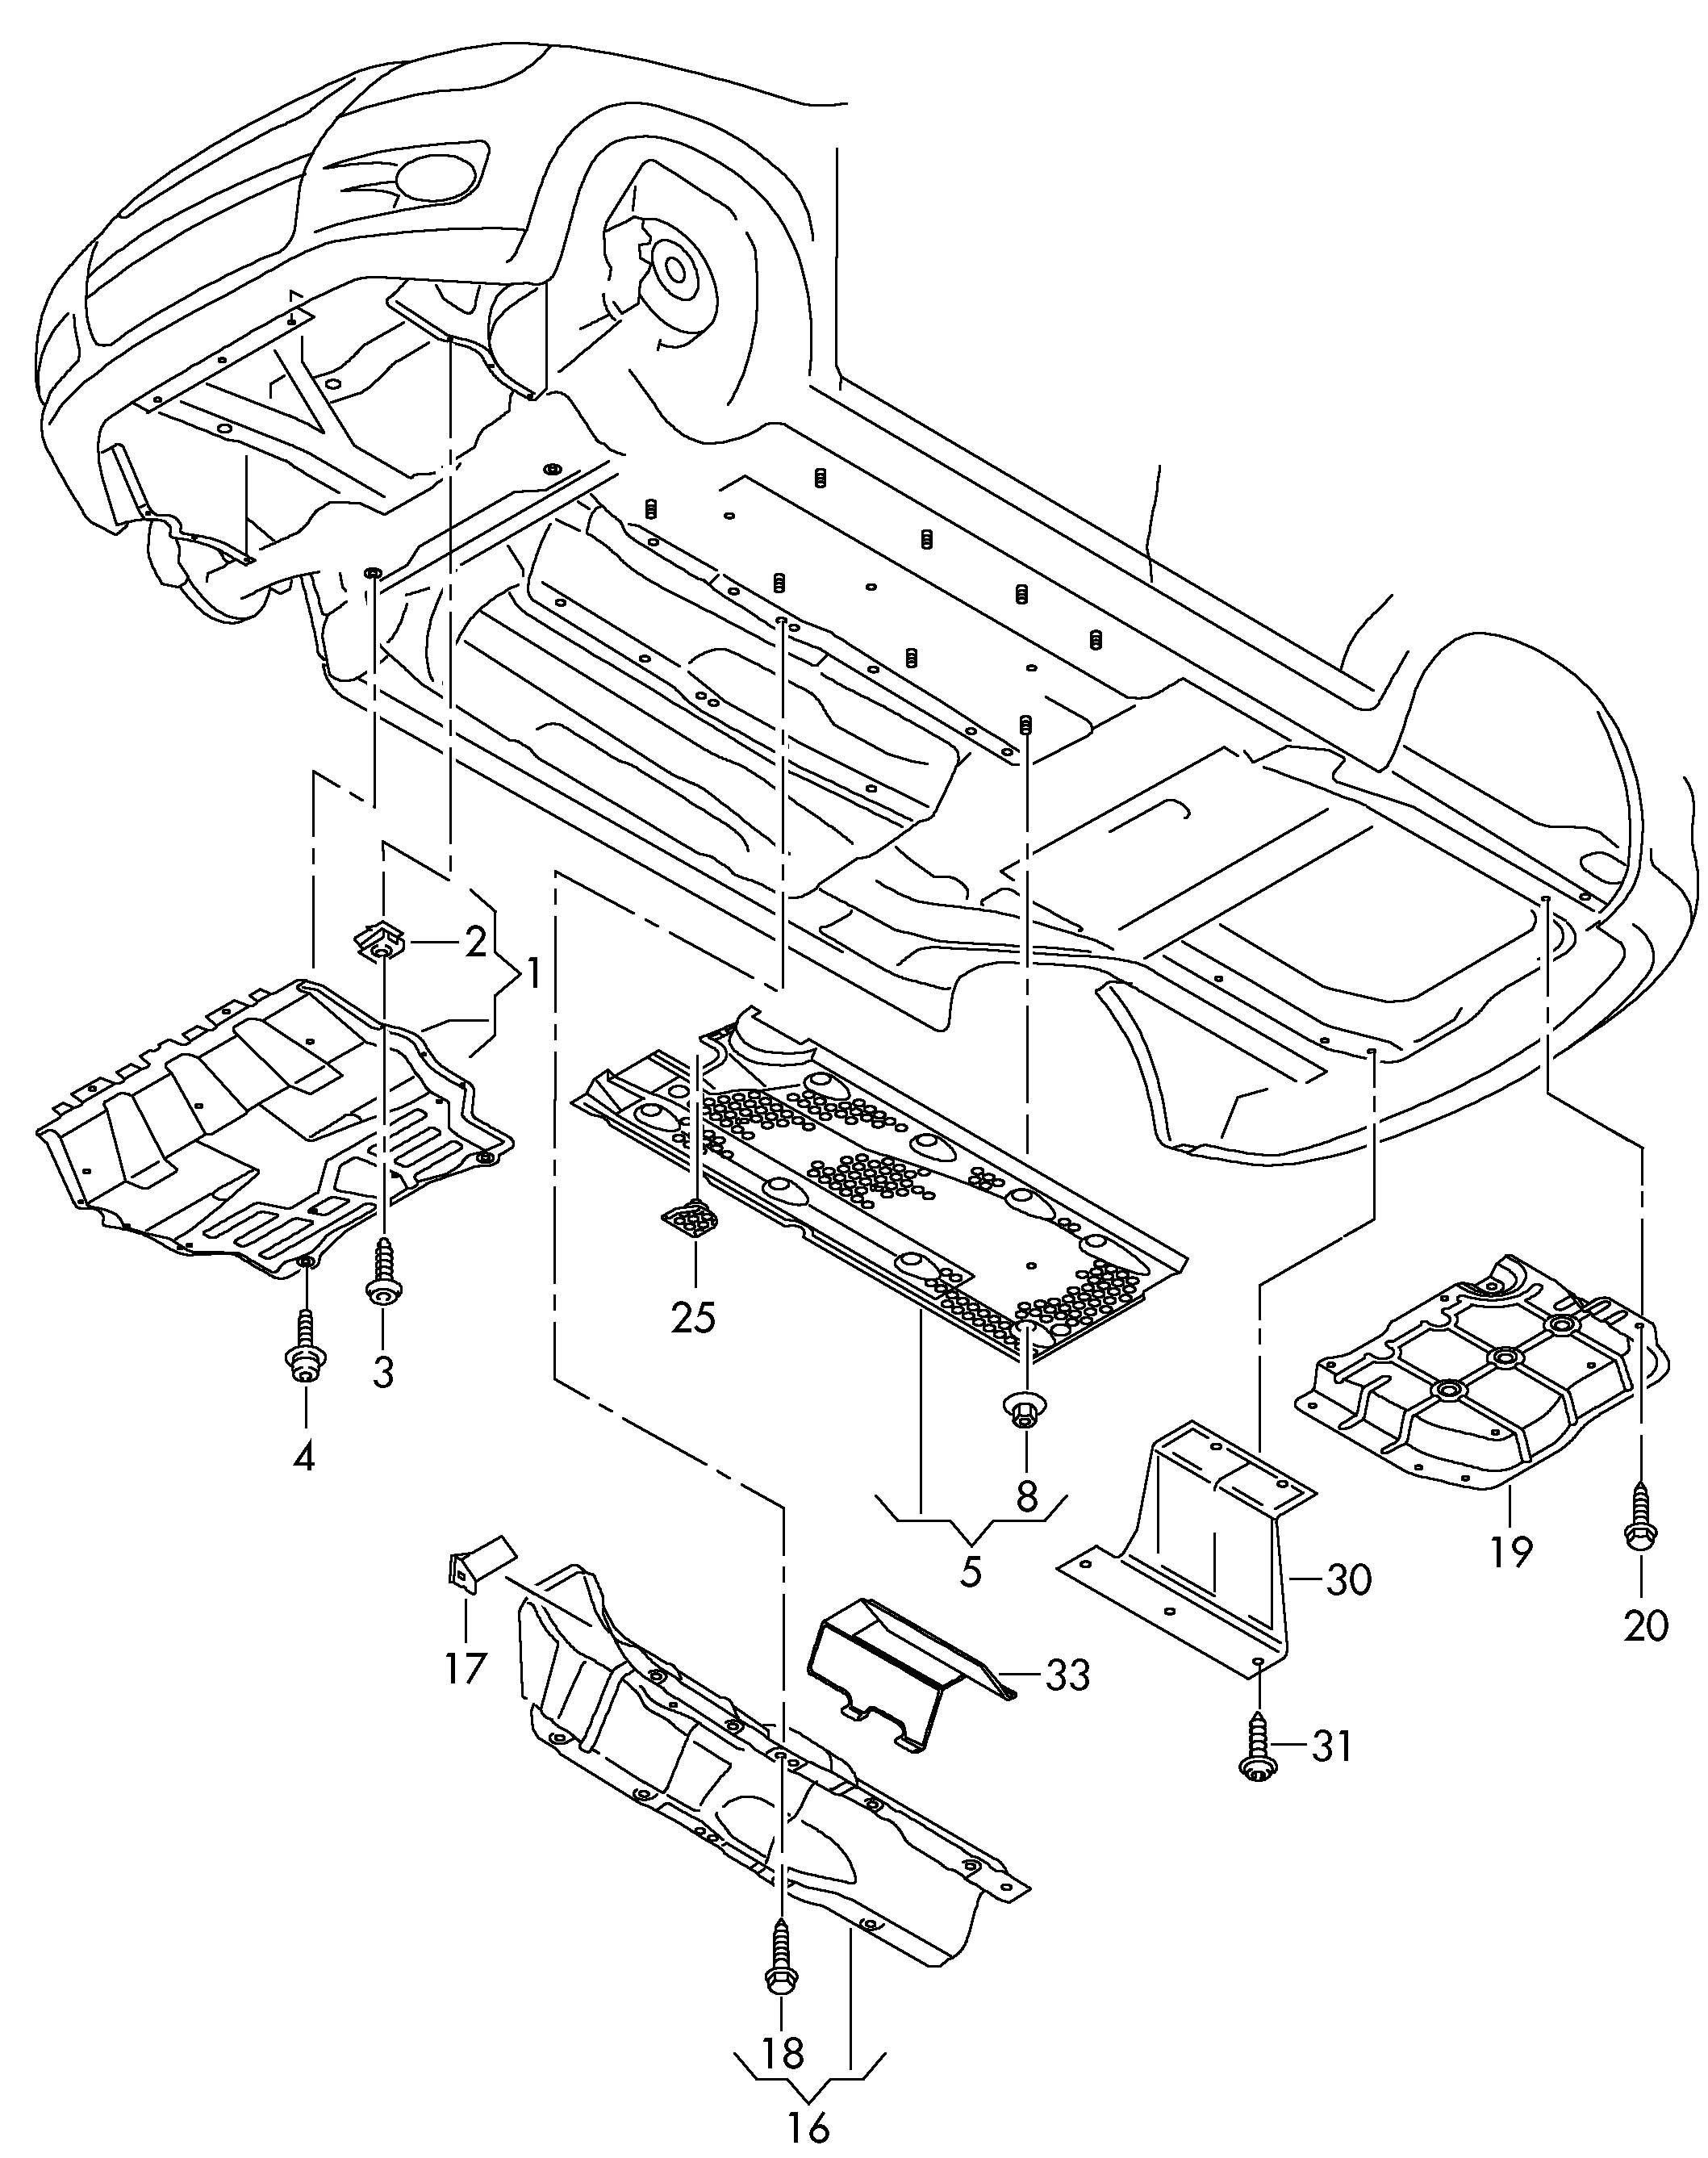 Volkswagen Sharan Fuse Box Diagram